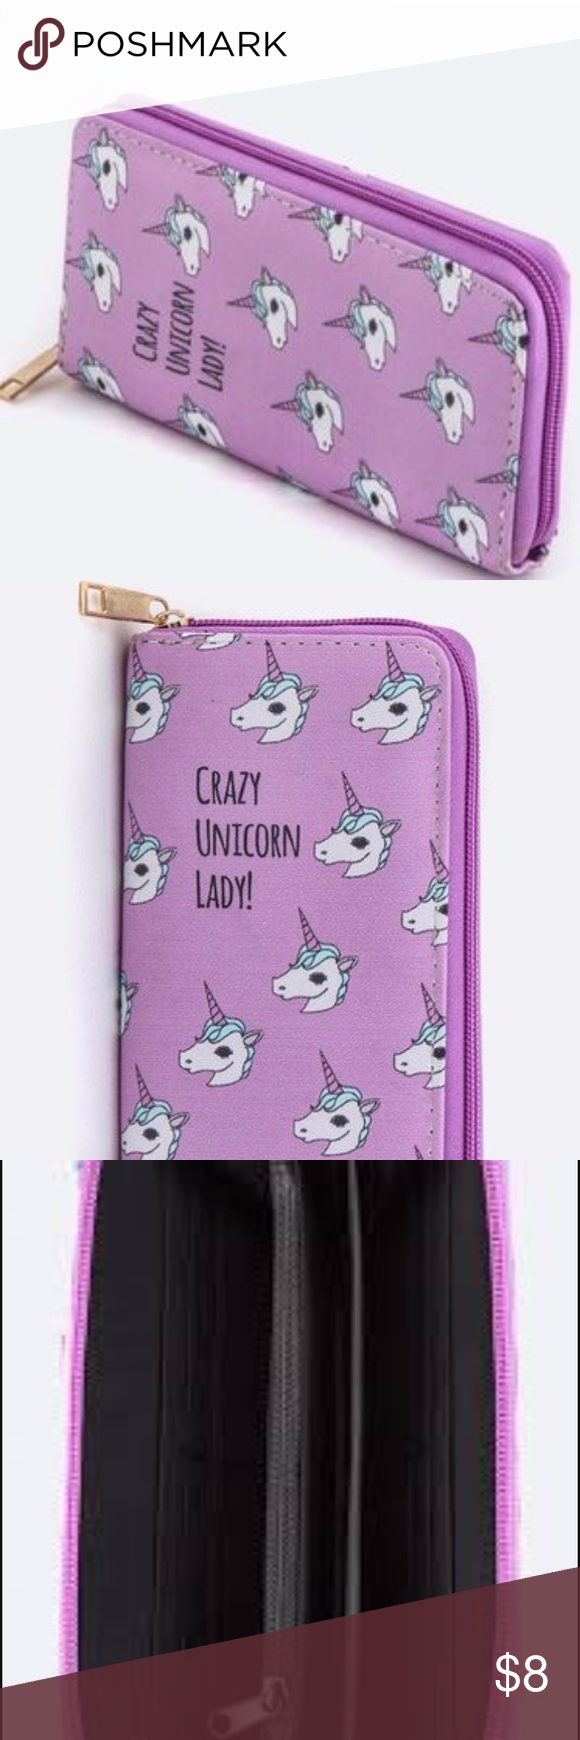 CRAZY UNICORN LADY WALLET  CRaZy UnICorn LaDY WALLET USED BUT GOOD CONDITION. ZIP AROUND WALLET. BUNDLE 2 OR MORE FOR 20% OFF ! LOOKS CUTE WITH THE BACKPACK I HAVE FOR SALE  ( THIS IS NOT BETSEY) Betsey Johnson Bags Wallets